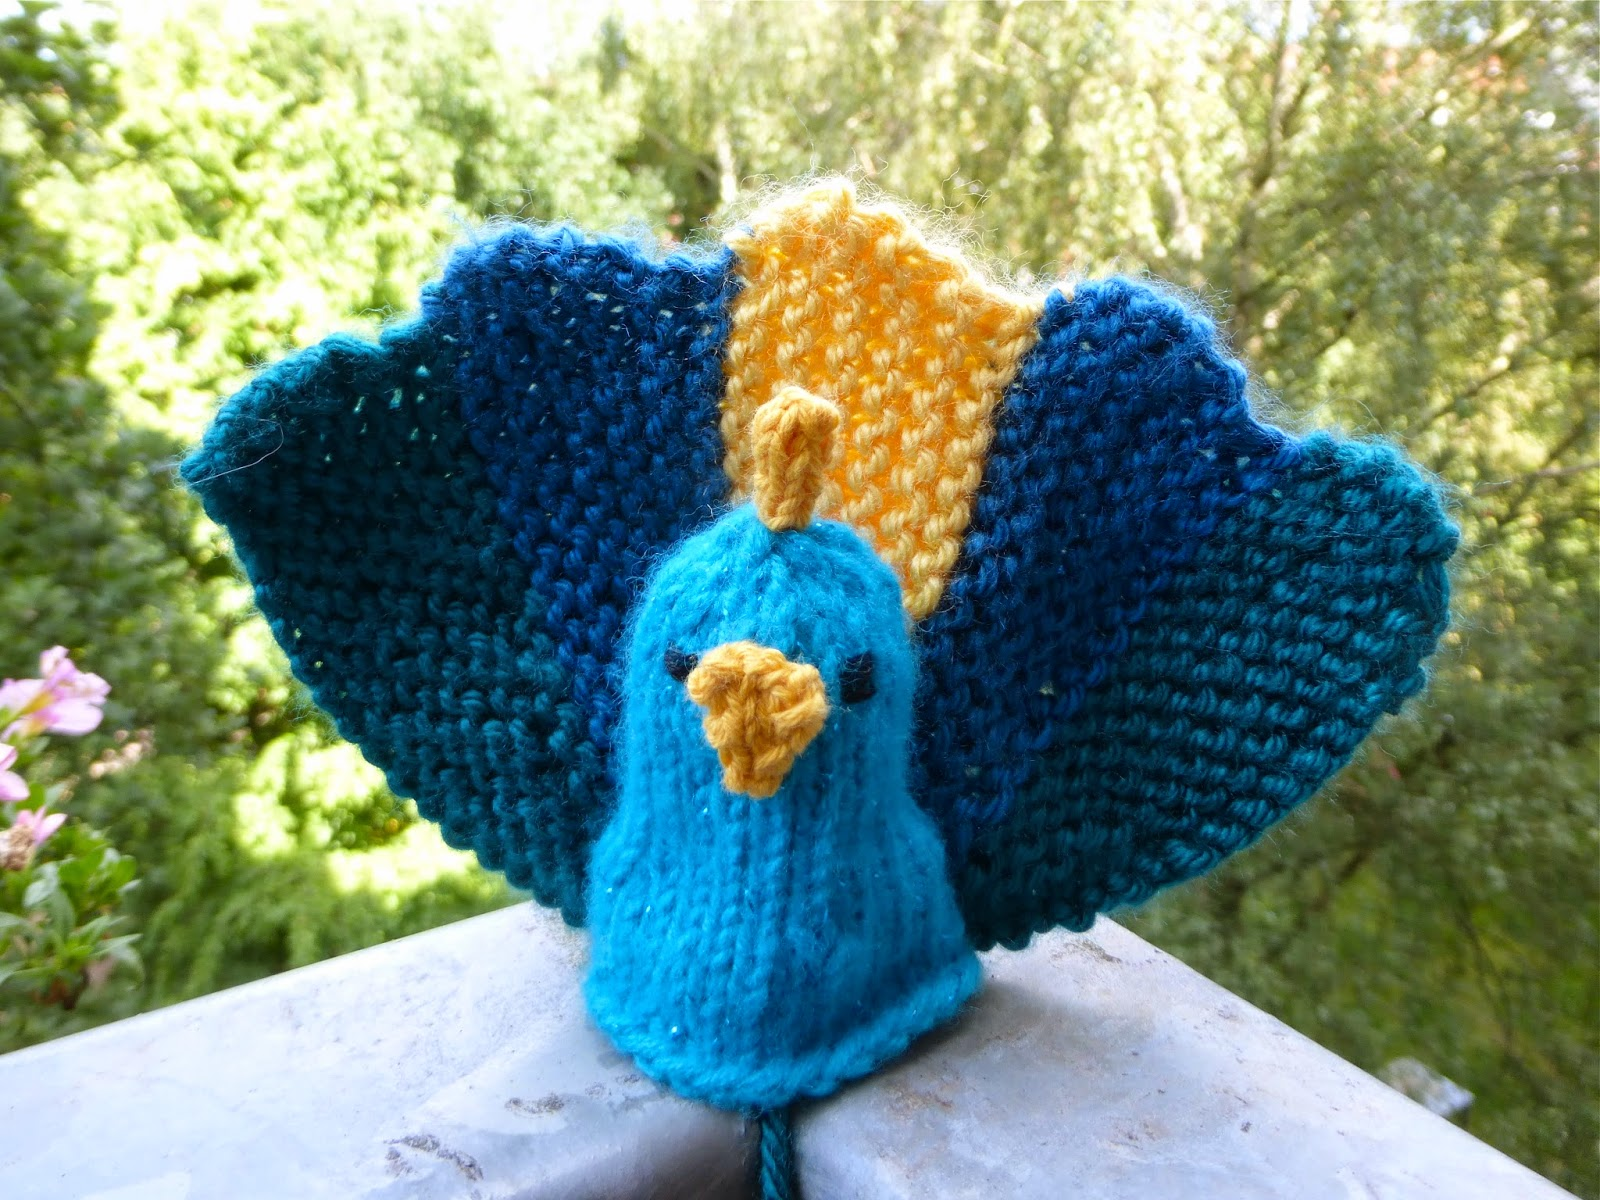 Peacock Knitting Pattern : Yarn Birdy Blog: How to Knit a Peacock Free Pattern and Tutorial